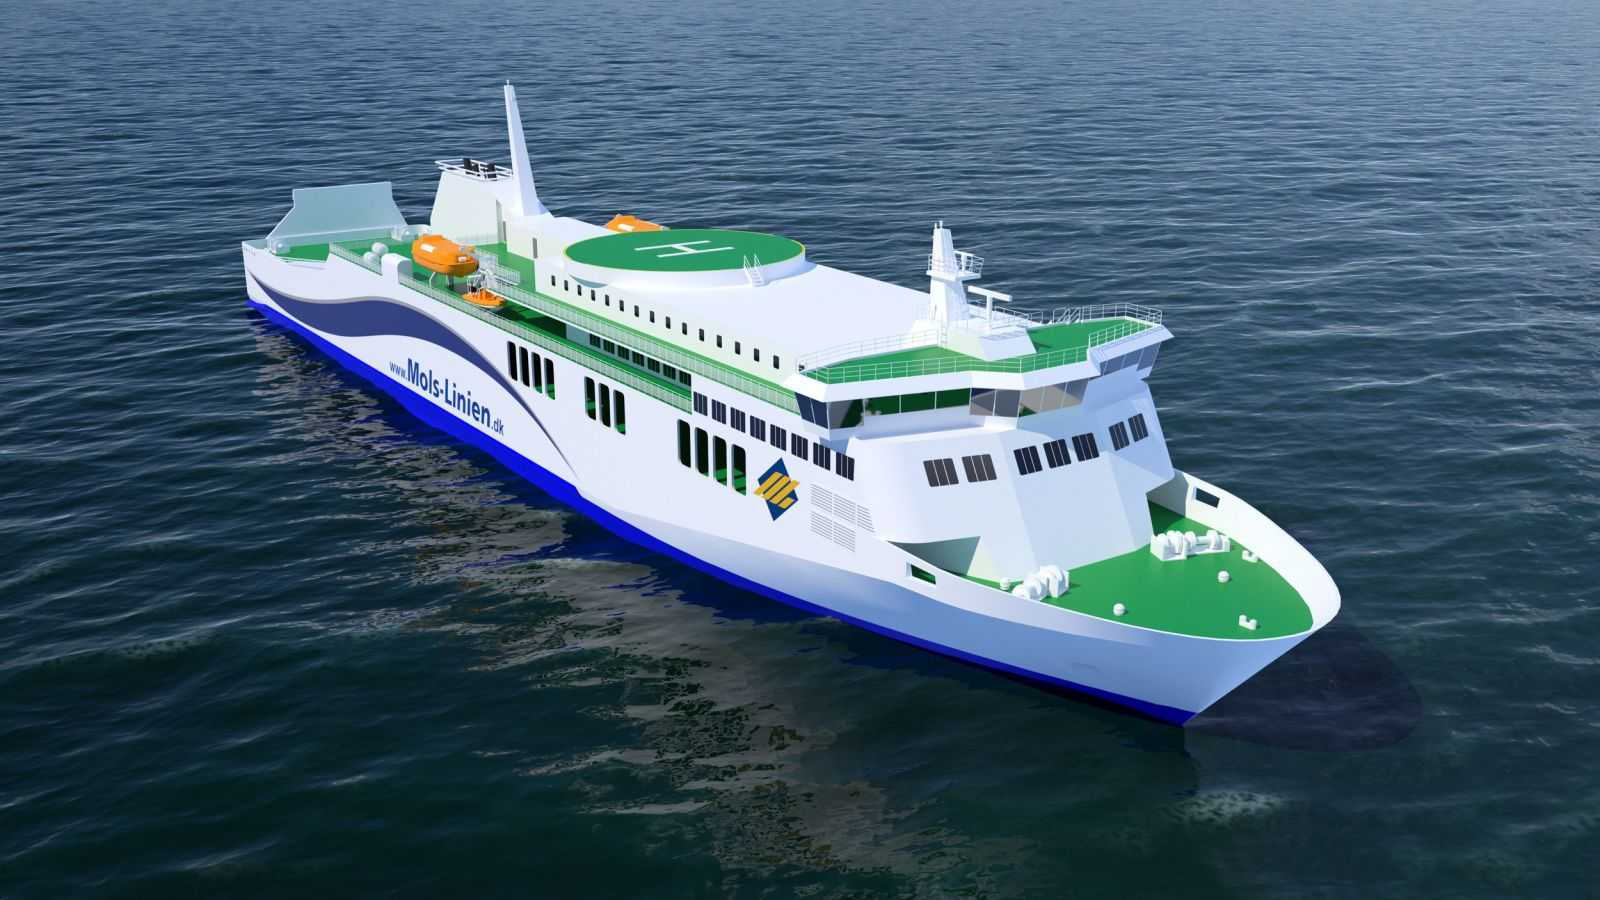 Rolls Royce Delivers Propulsion For Danish Passenger Ferry